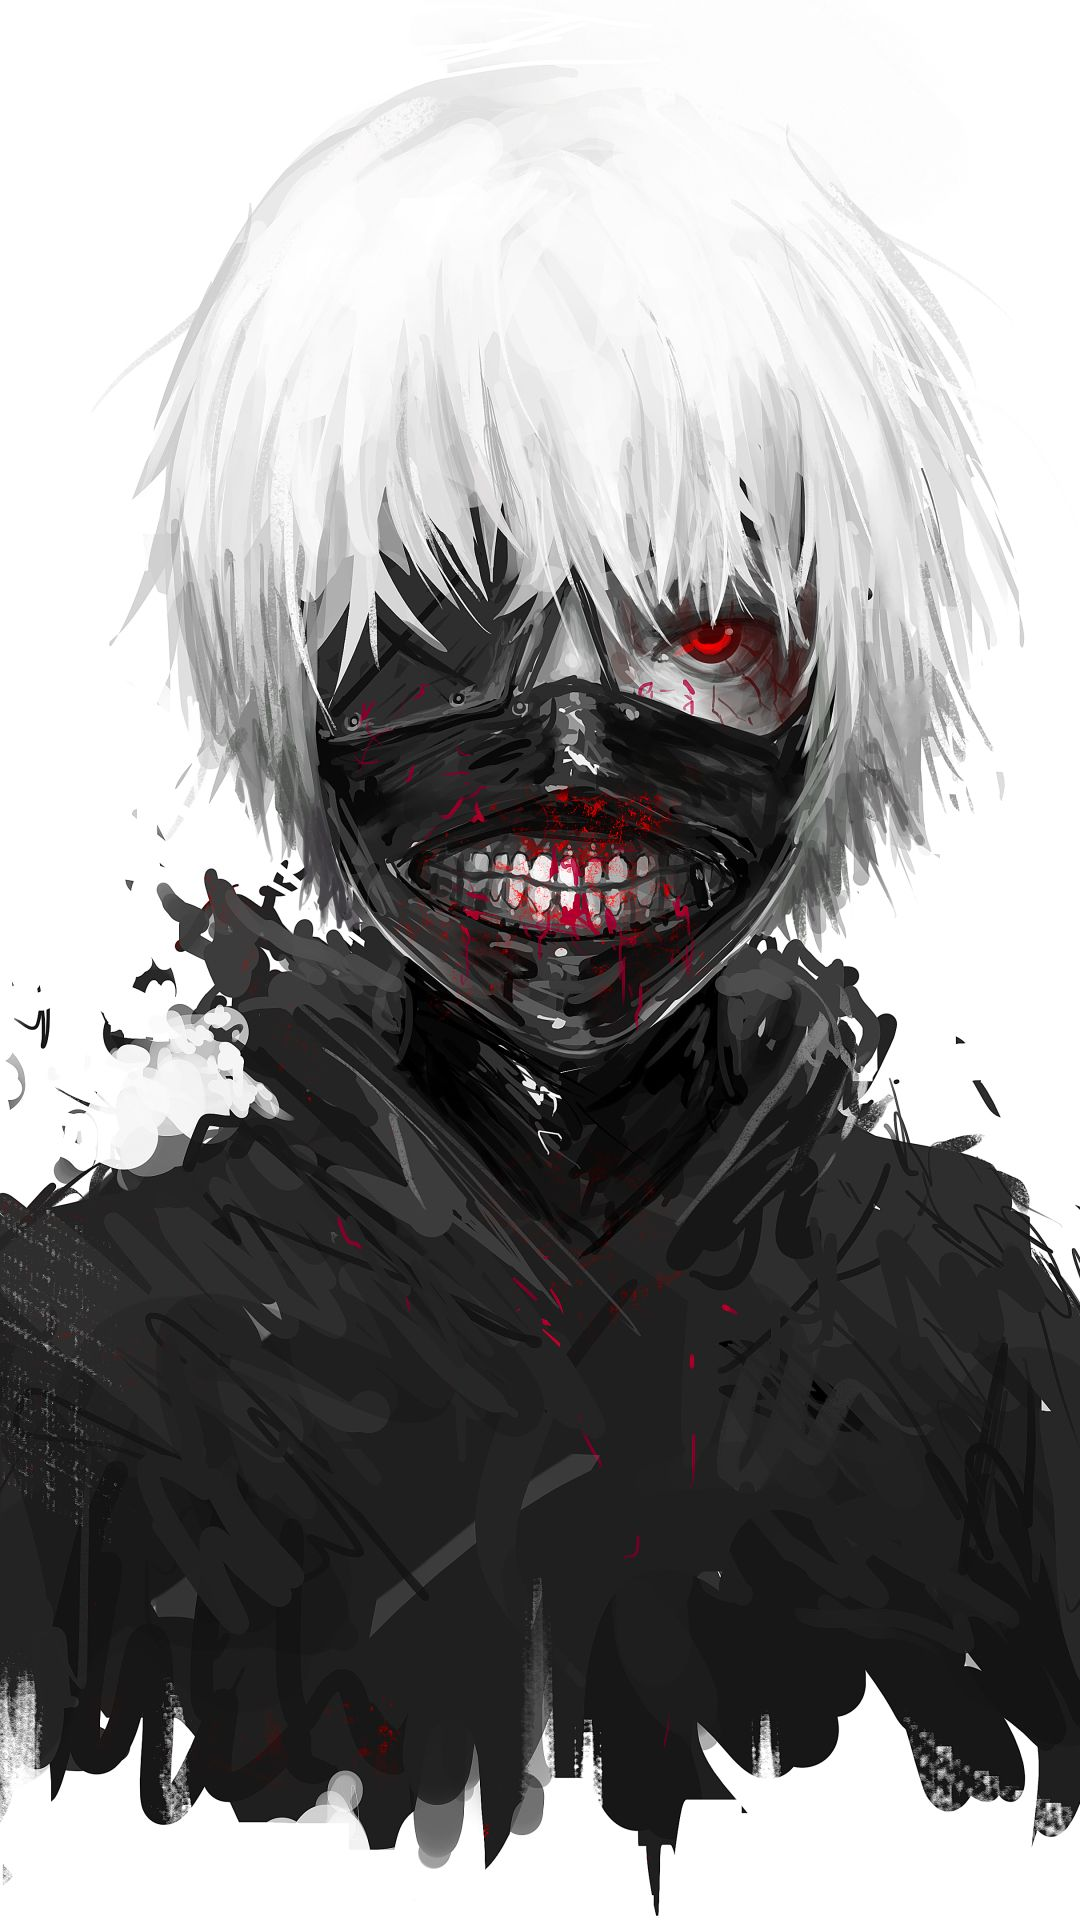 Pin By Eltaay On 7 Plus Tokyo Ghoul Wallpapers Tokyo Ghoul Anime Tokyo Ghoul Cosplay